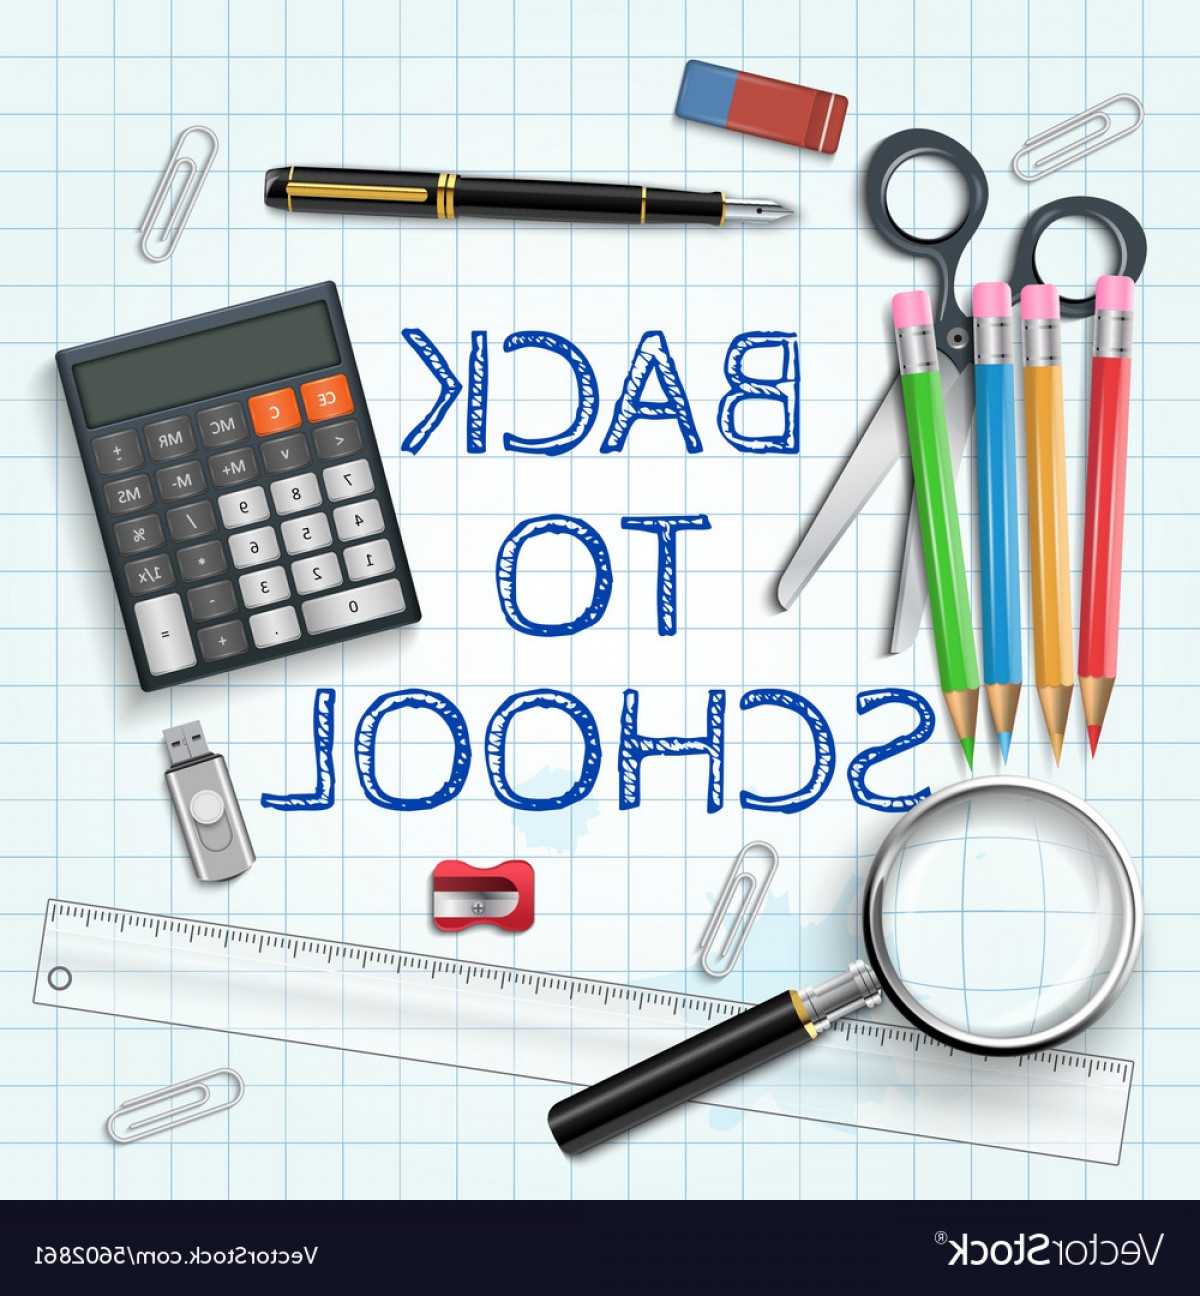 Individual School Supplies Vector: Pen Calculator And Other School Supplies Vector